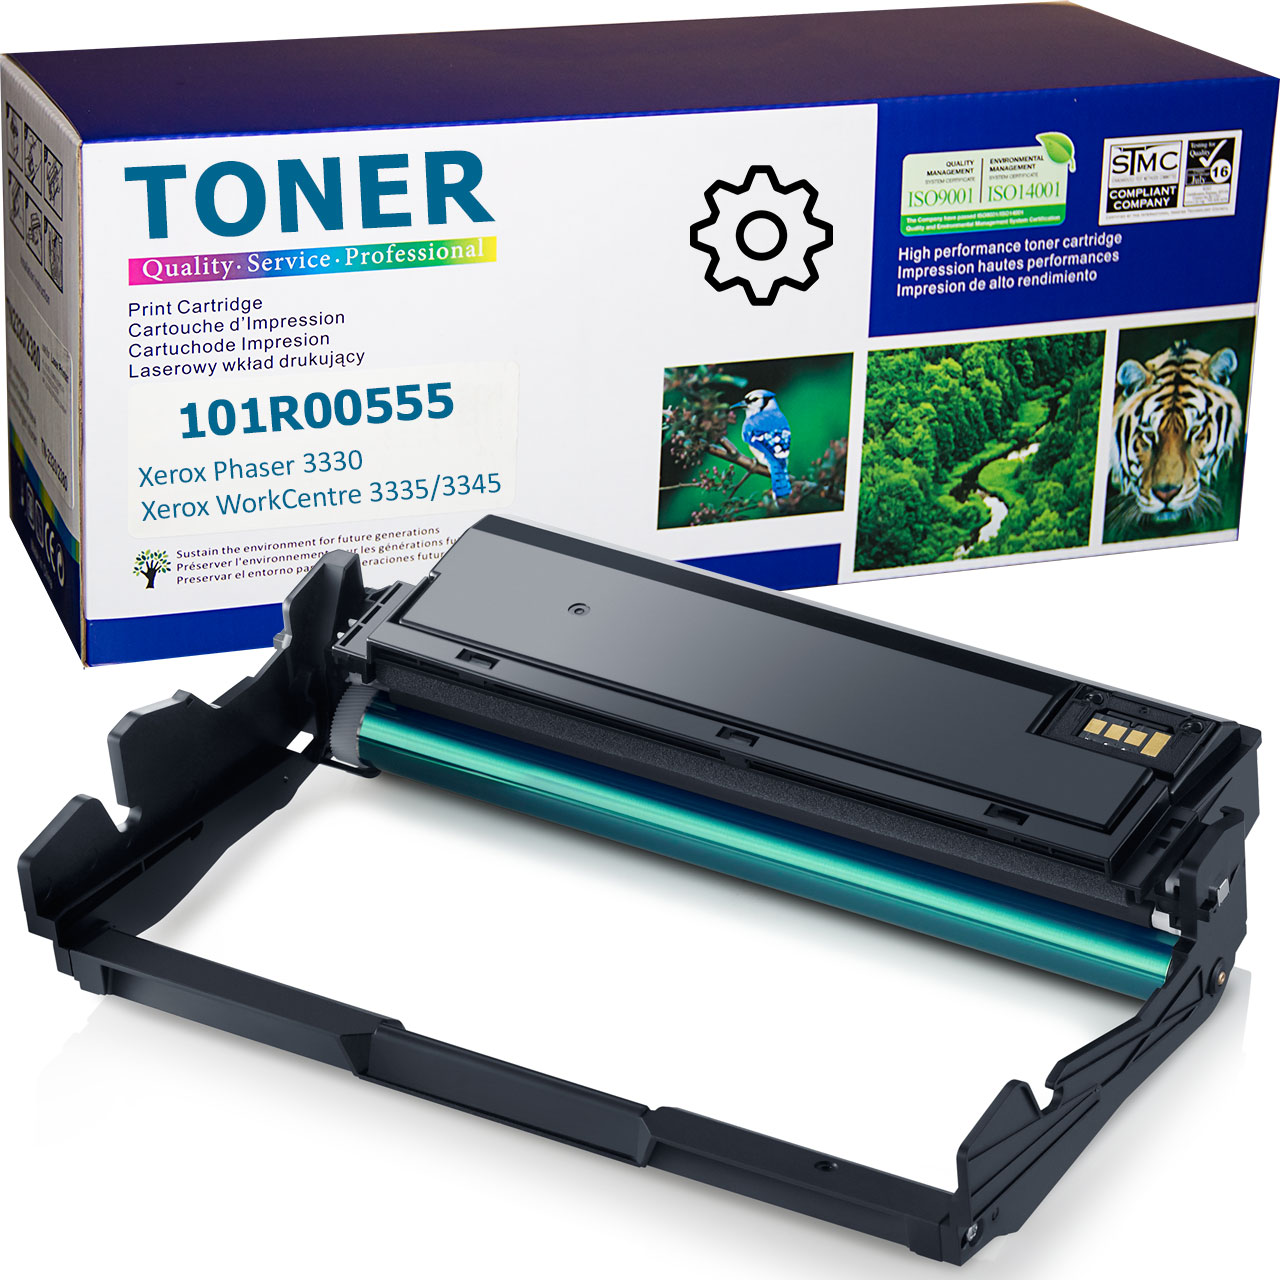 101R00555 Drum Cartridge compatible with Xerox Phaser 3330